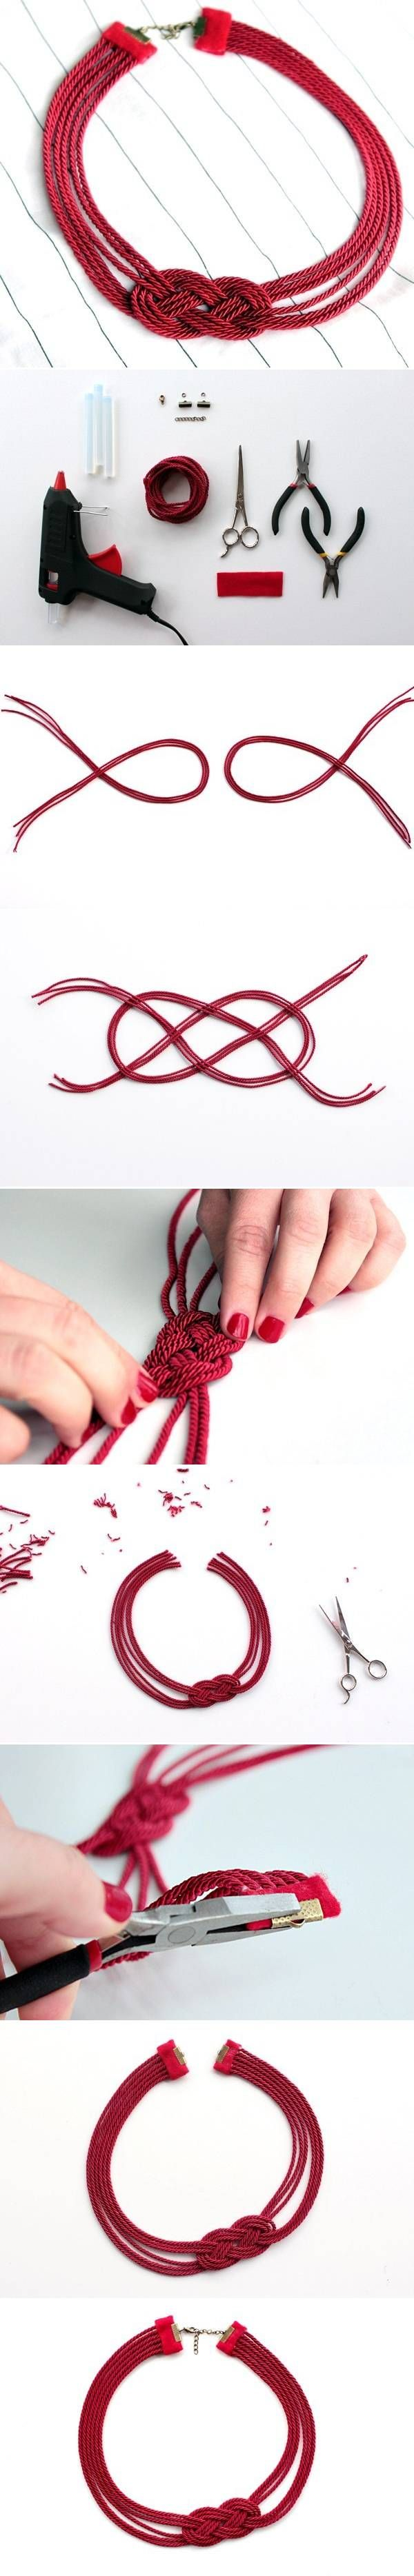 DIY Cord Necklace